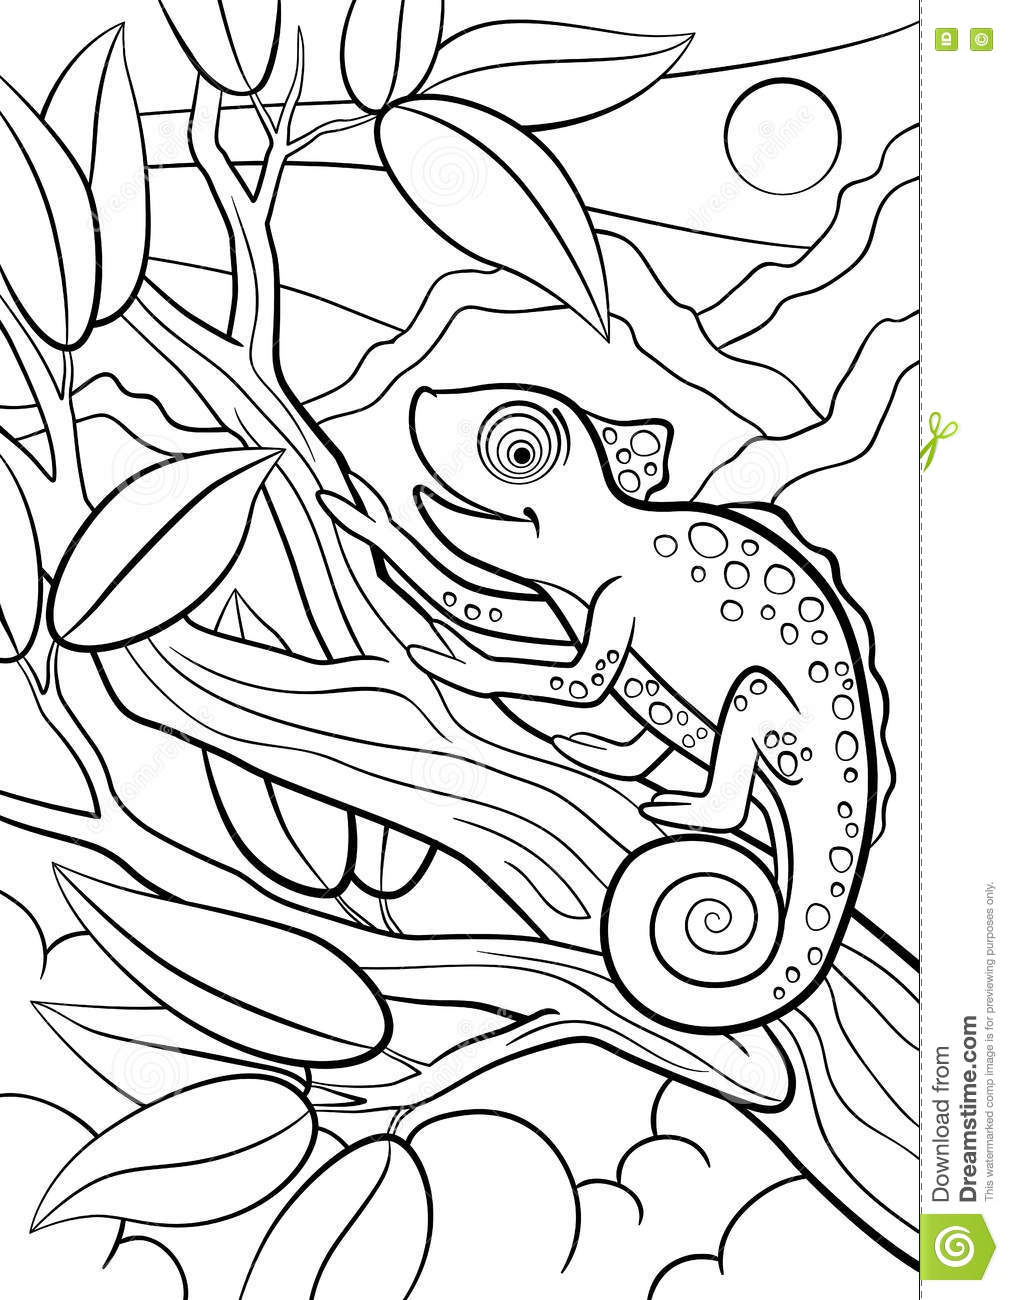 Aninimal Book: Coloring Pages. Wild Animals. Little Cute Chameleon Stock ...